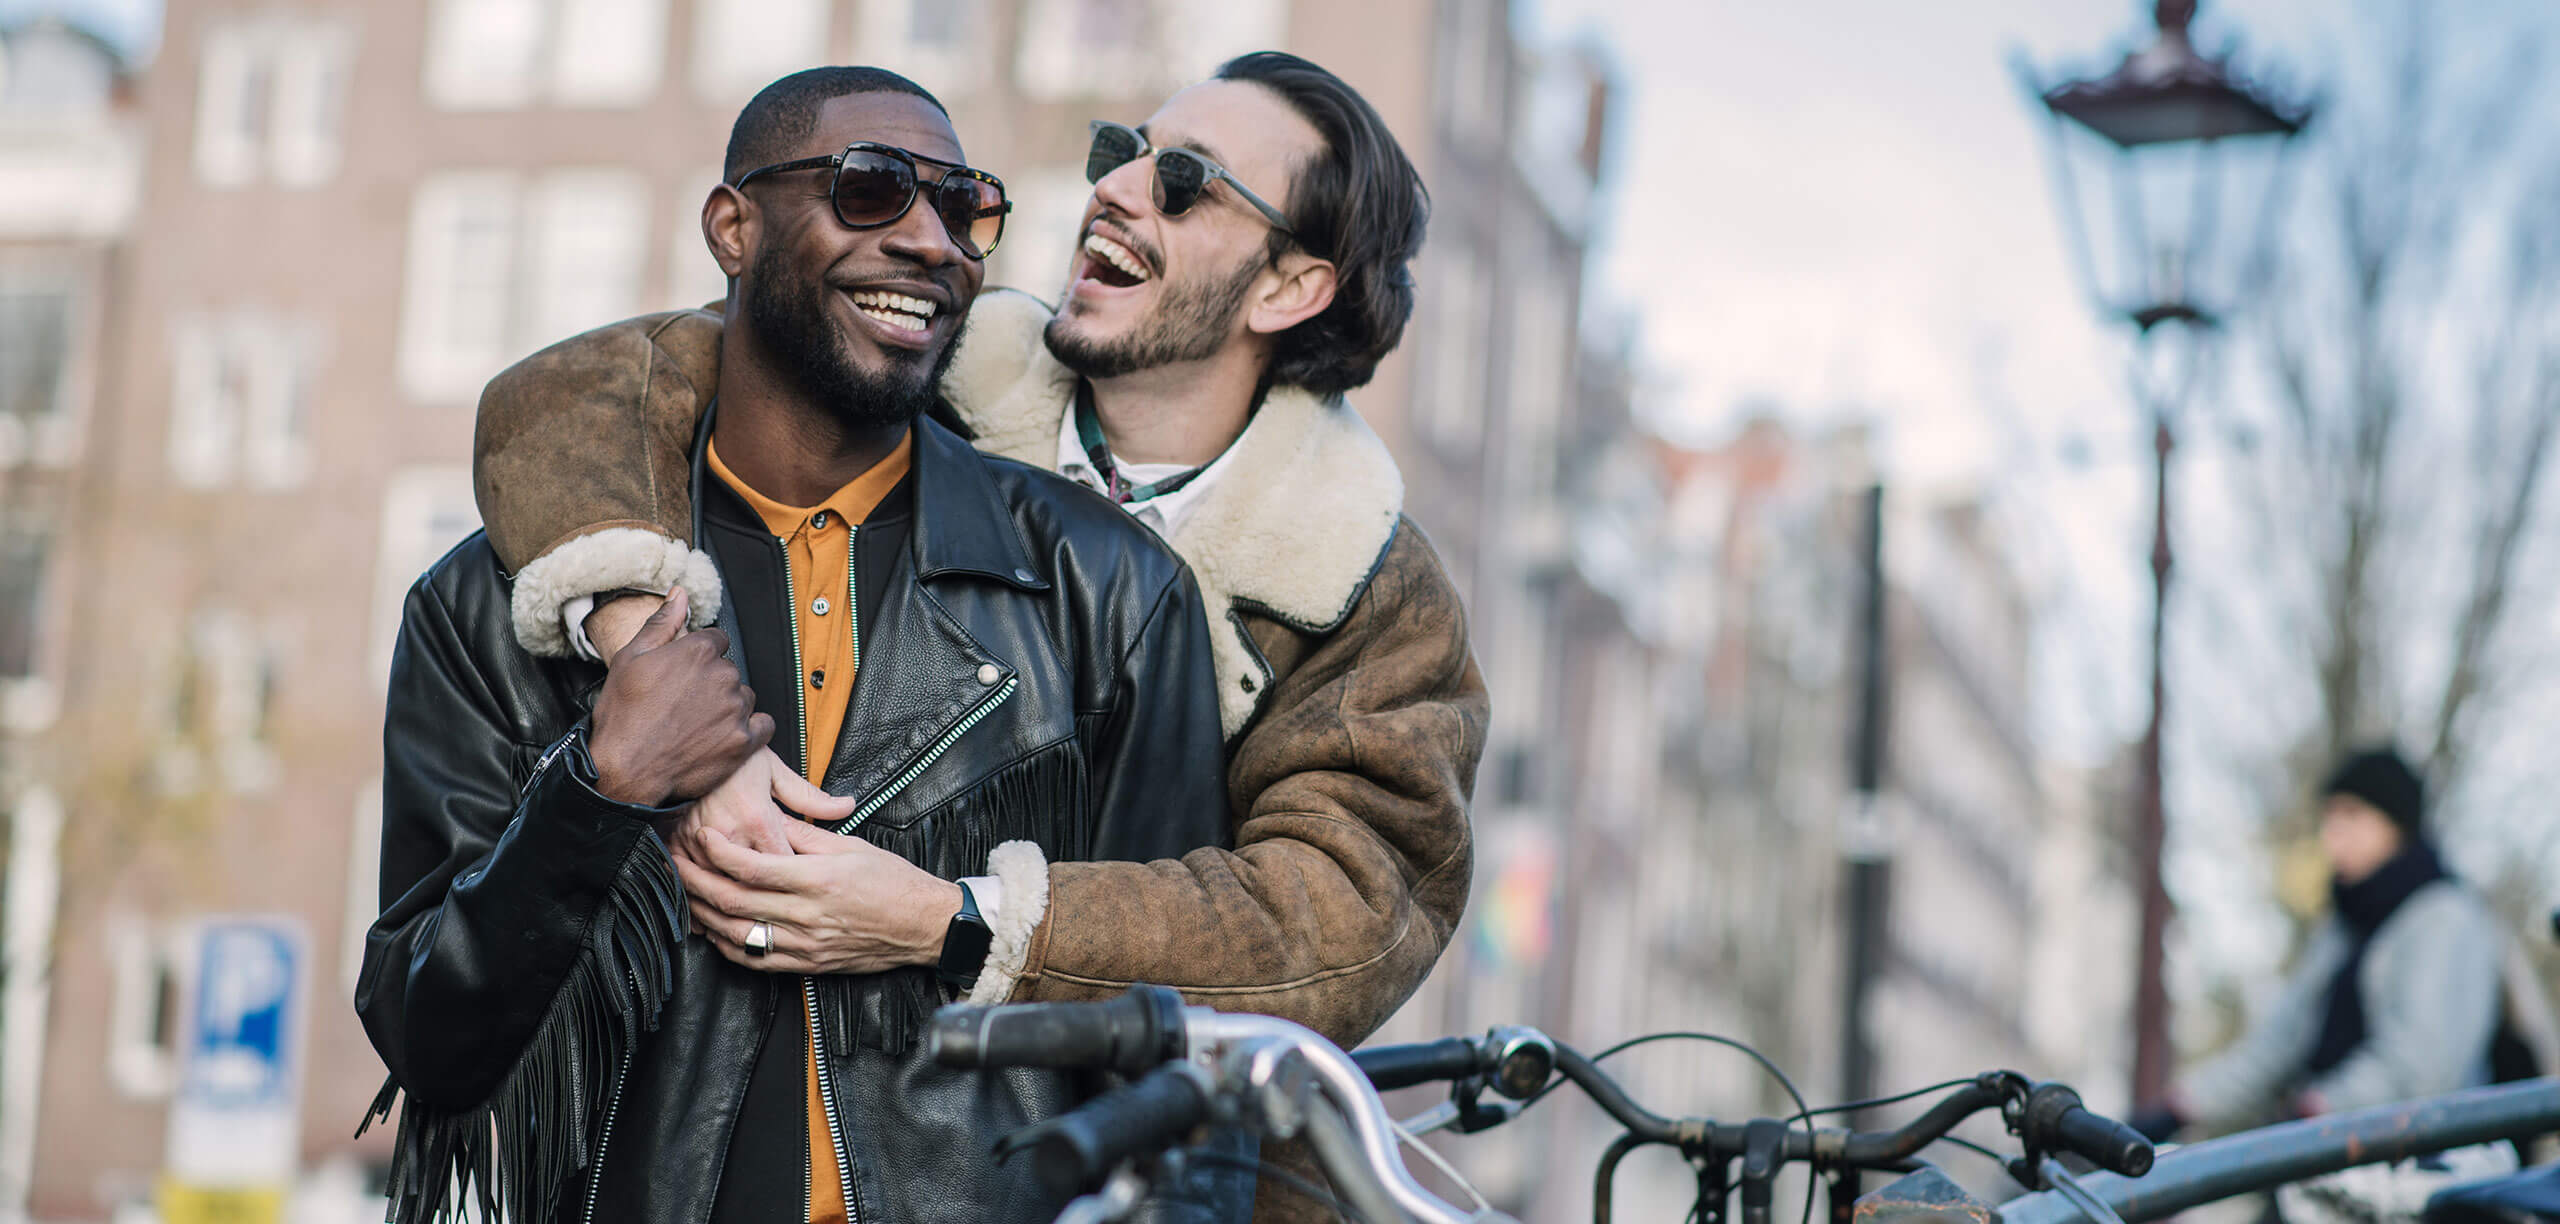 Same-sex couple embraced on street in late autumn or early winter in Amsterdam. Caucasian and African ethnicity, brown hair, sunglasses, wearing leather jackets.